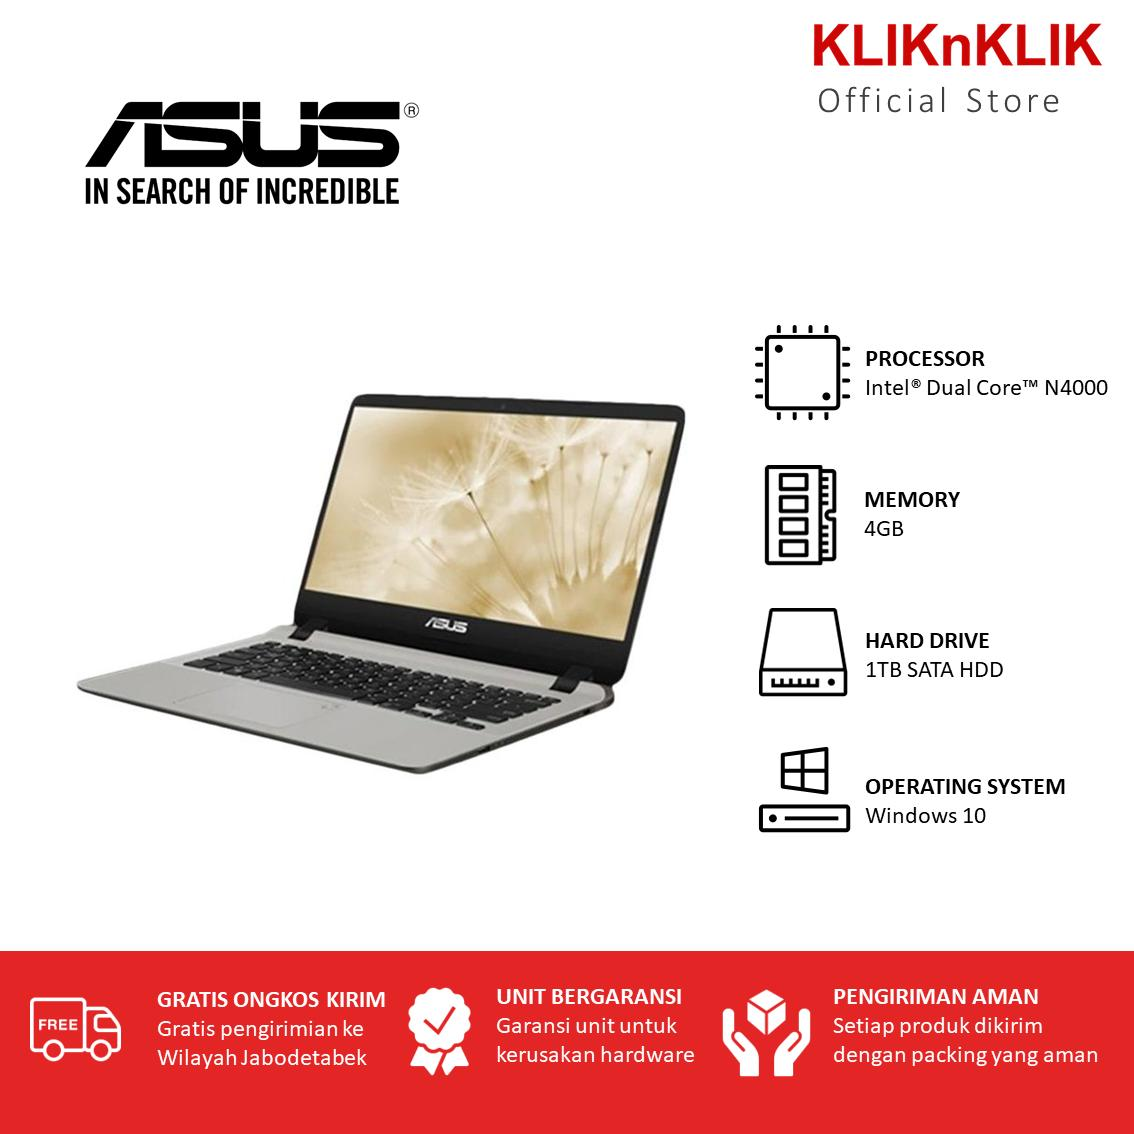 ASUS VivoBook A407MA-BV002T - RAM 4GB - Intel N4000 - HDD 1TB - 14 Inch - Windows 10 - Gold - Laptop Murah